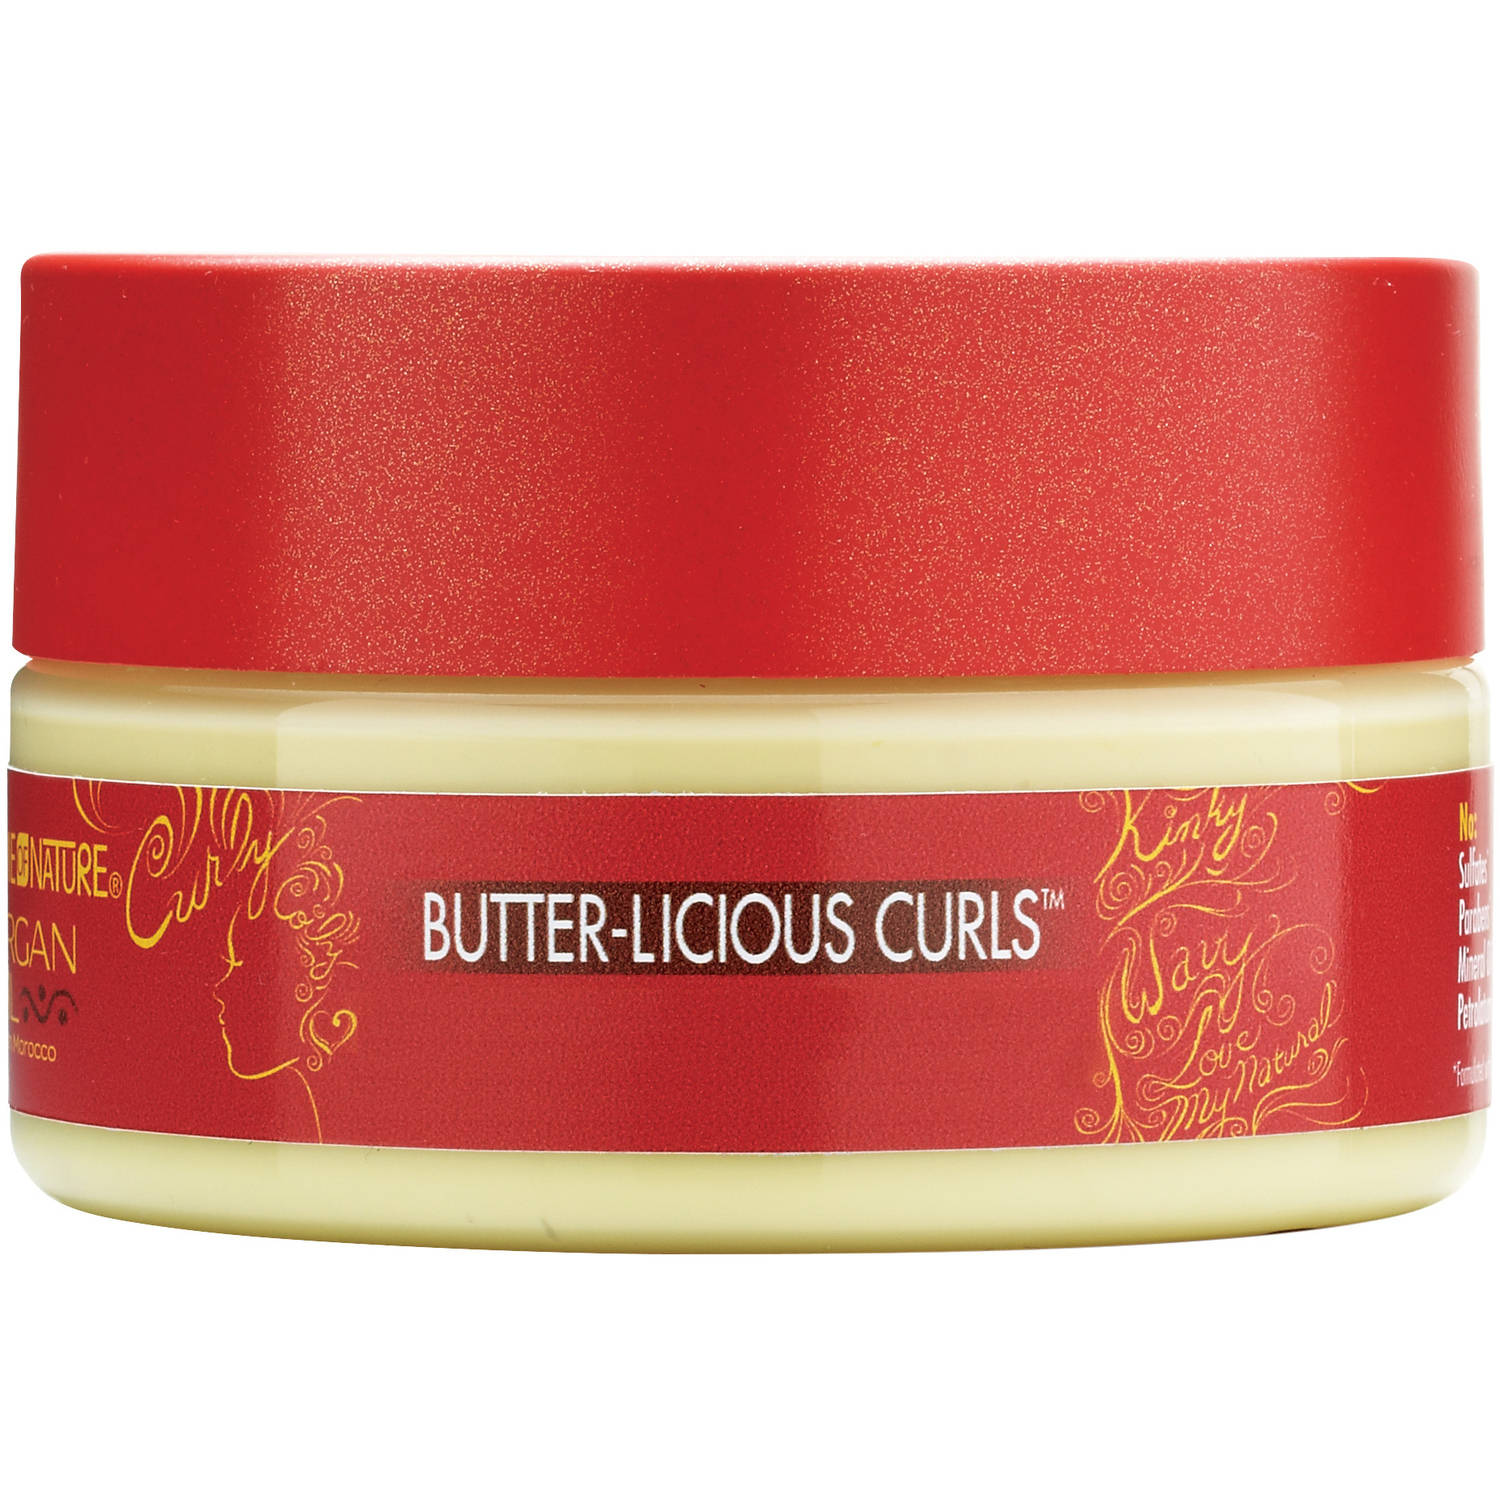 Creme of Nature Butter-Licious Curls Creme, 7.5 oz